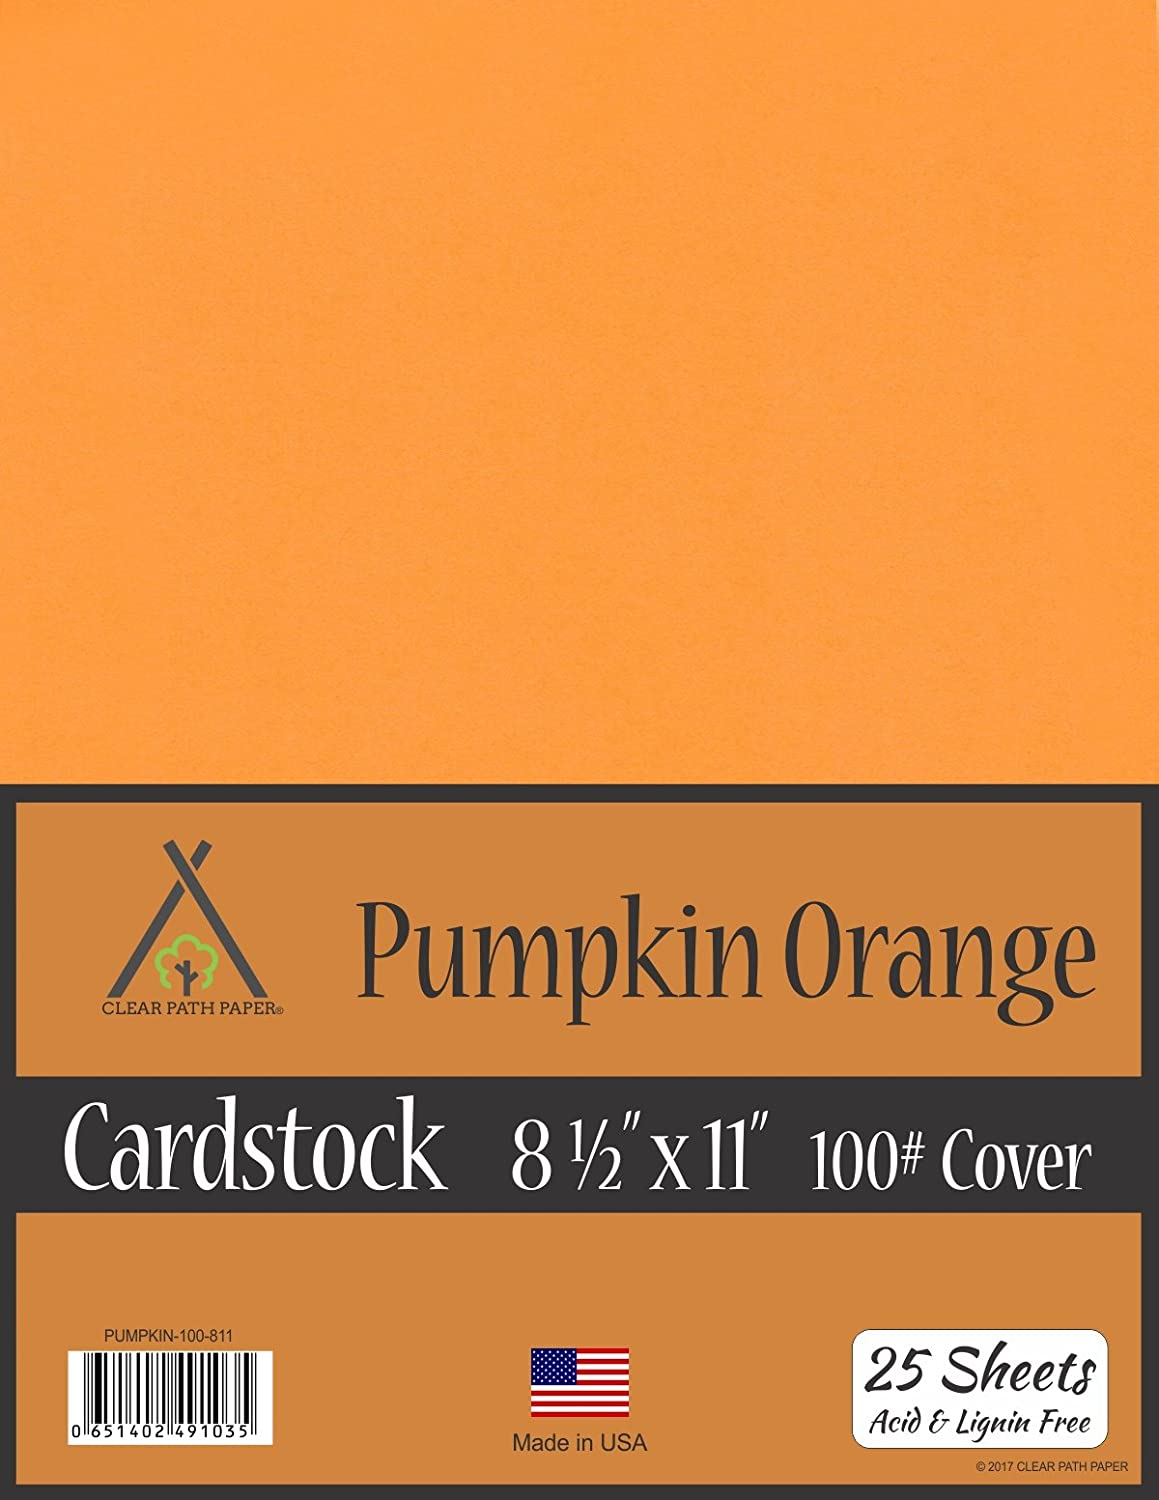 Pumpkin Orange Cardstock - 8.5 x 11 inch - 100Lb Cover - 25 Sheets Clear Path Paper